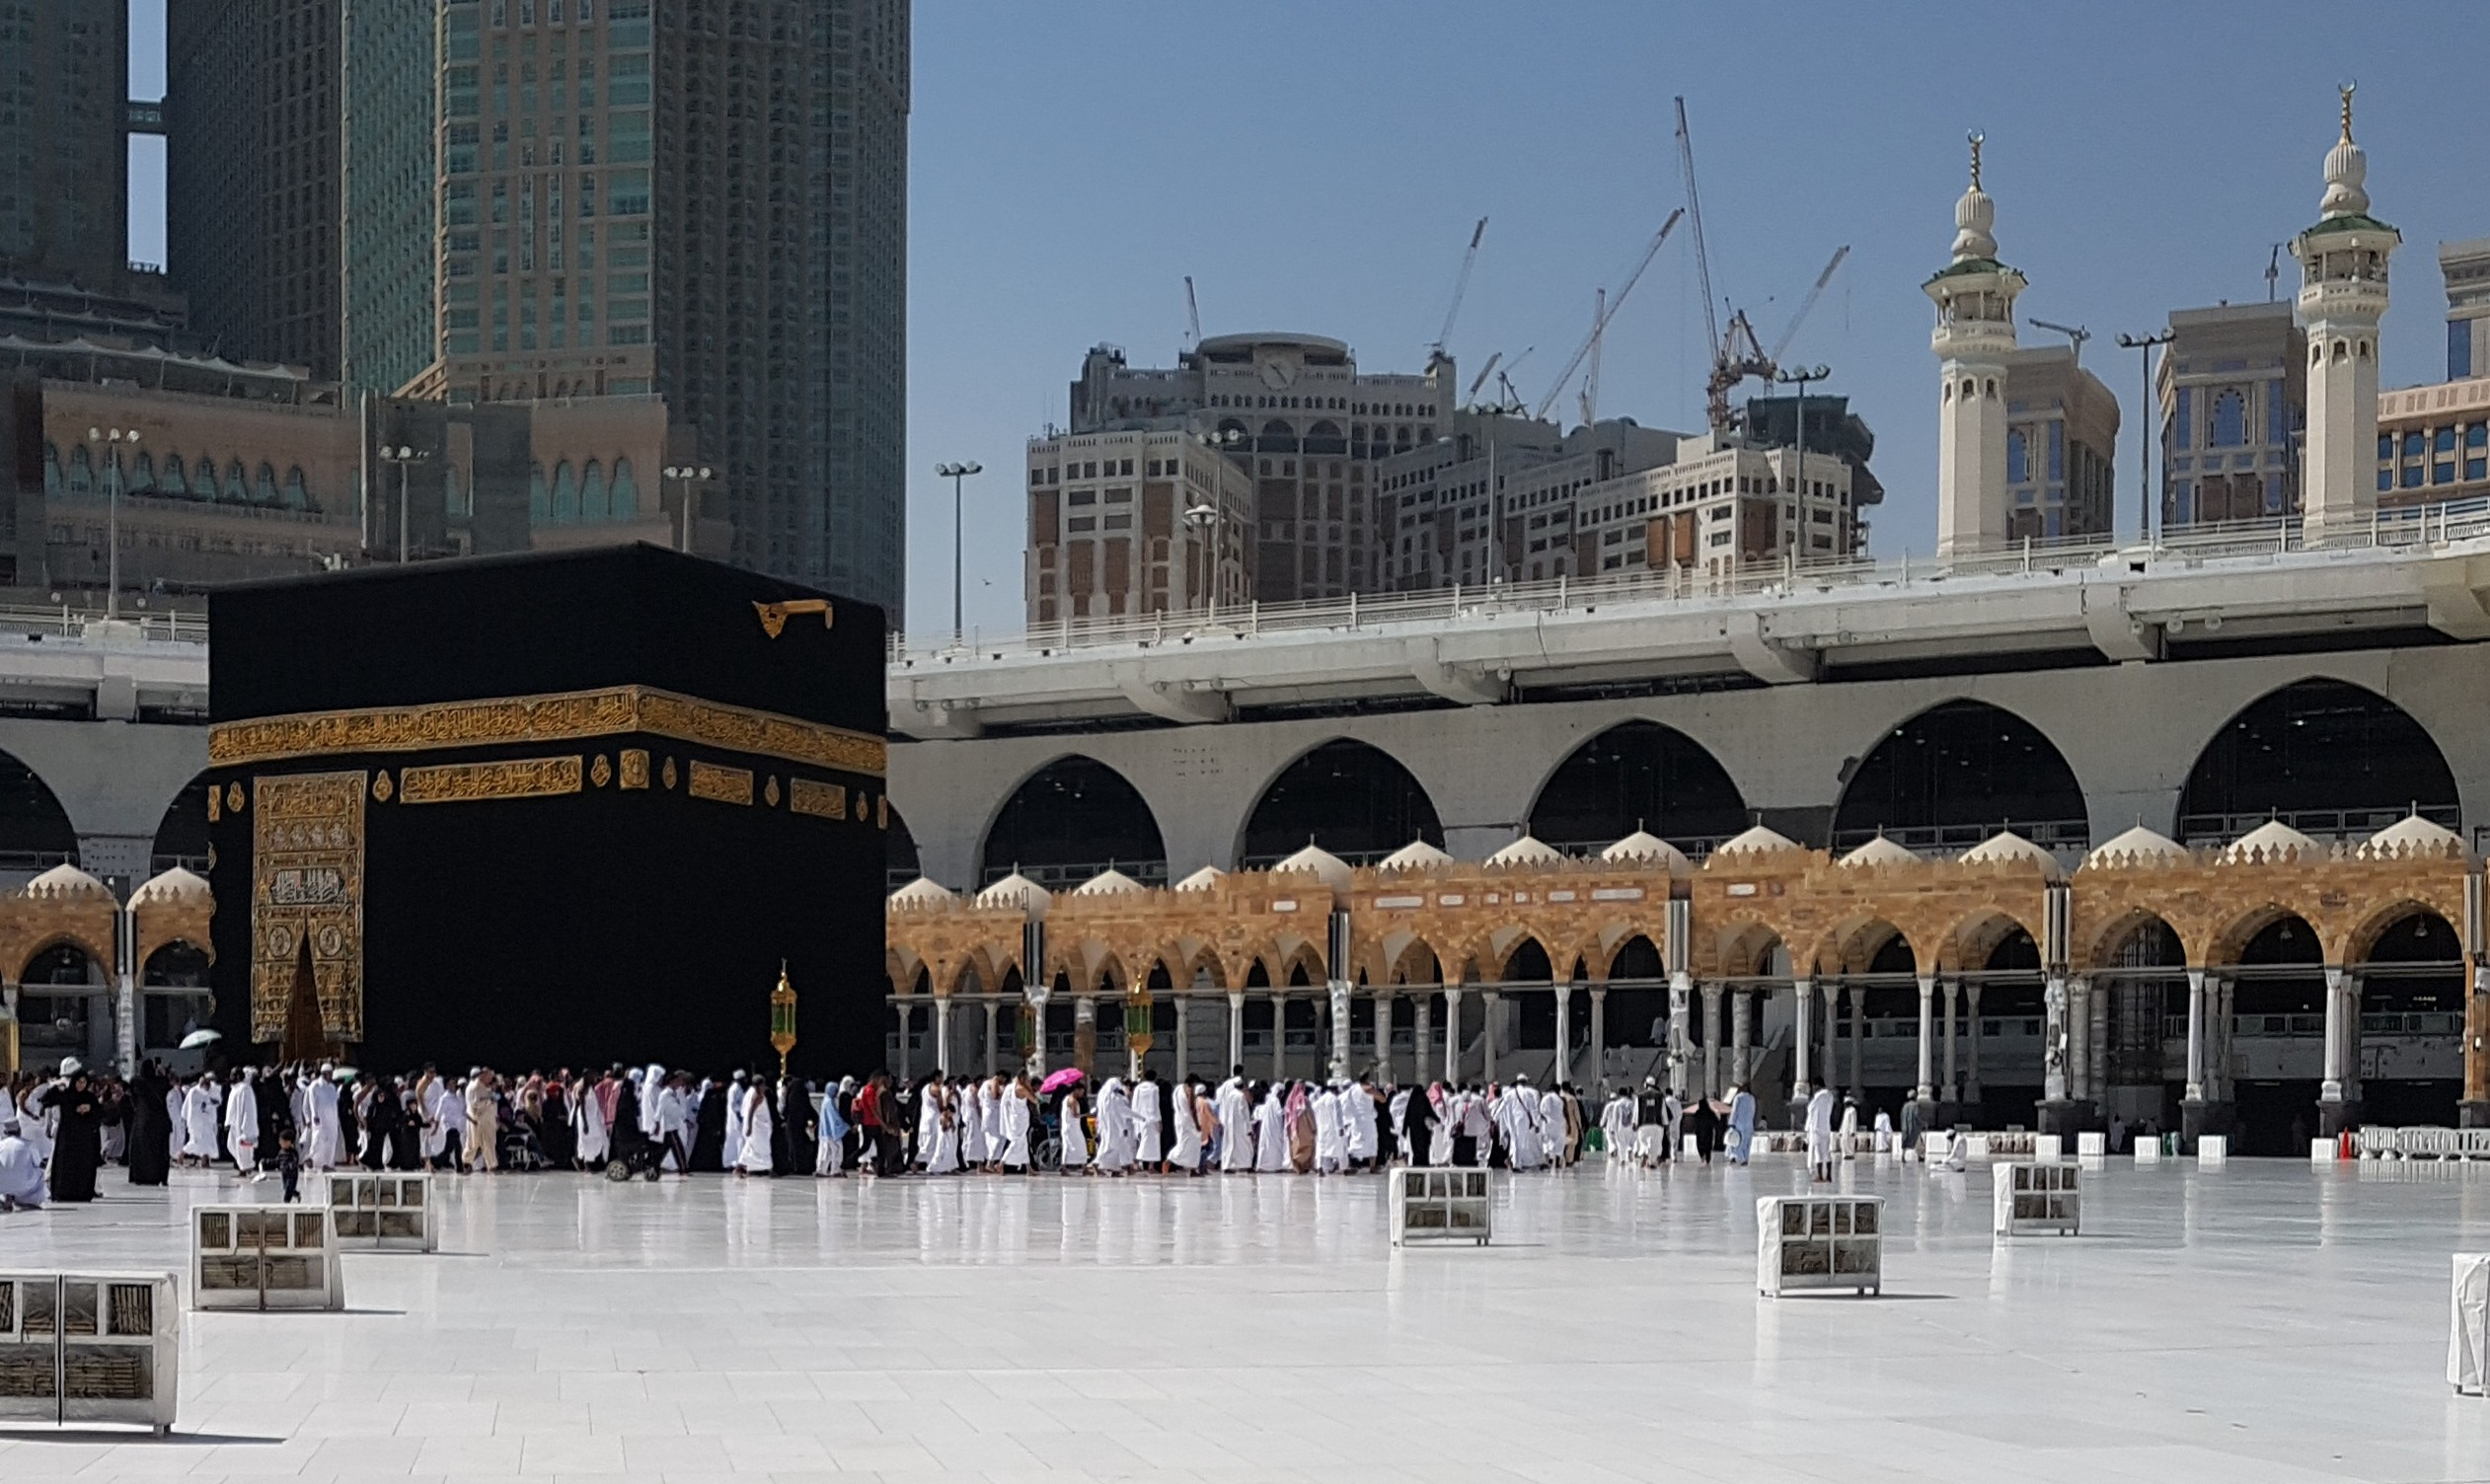 Picture of Kaba (The House of God as per Islam) in its Black embroidered Kiswah and the white marble floor with pilgrims making the rounds in the foreground.